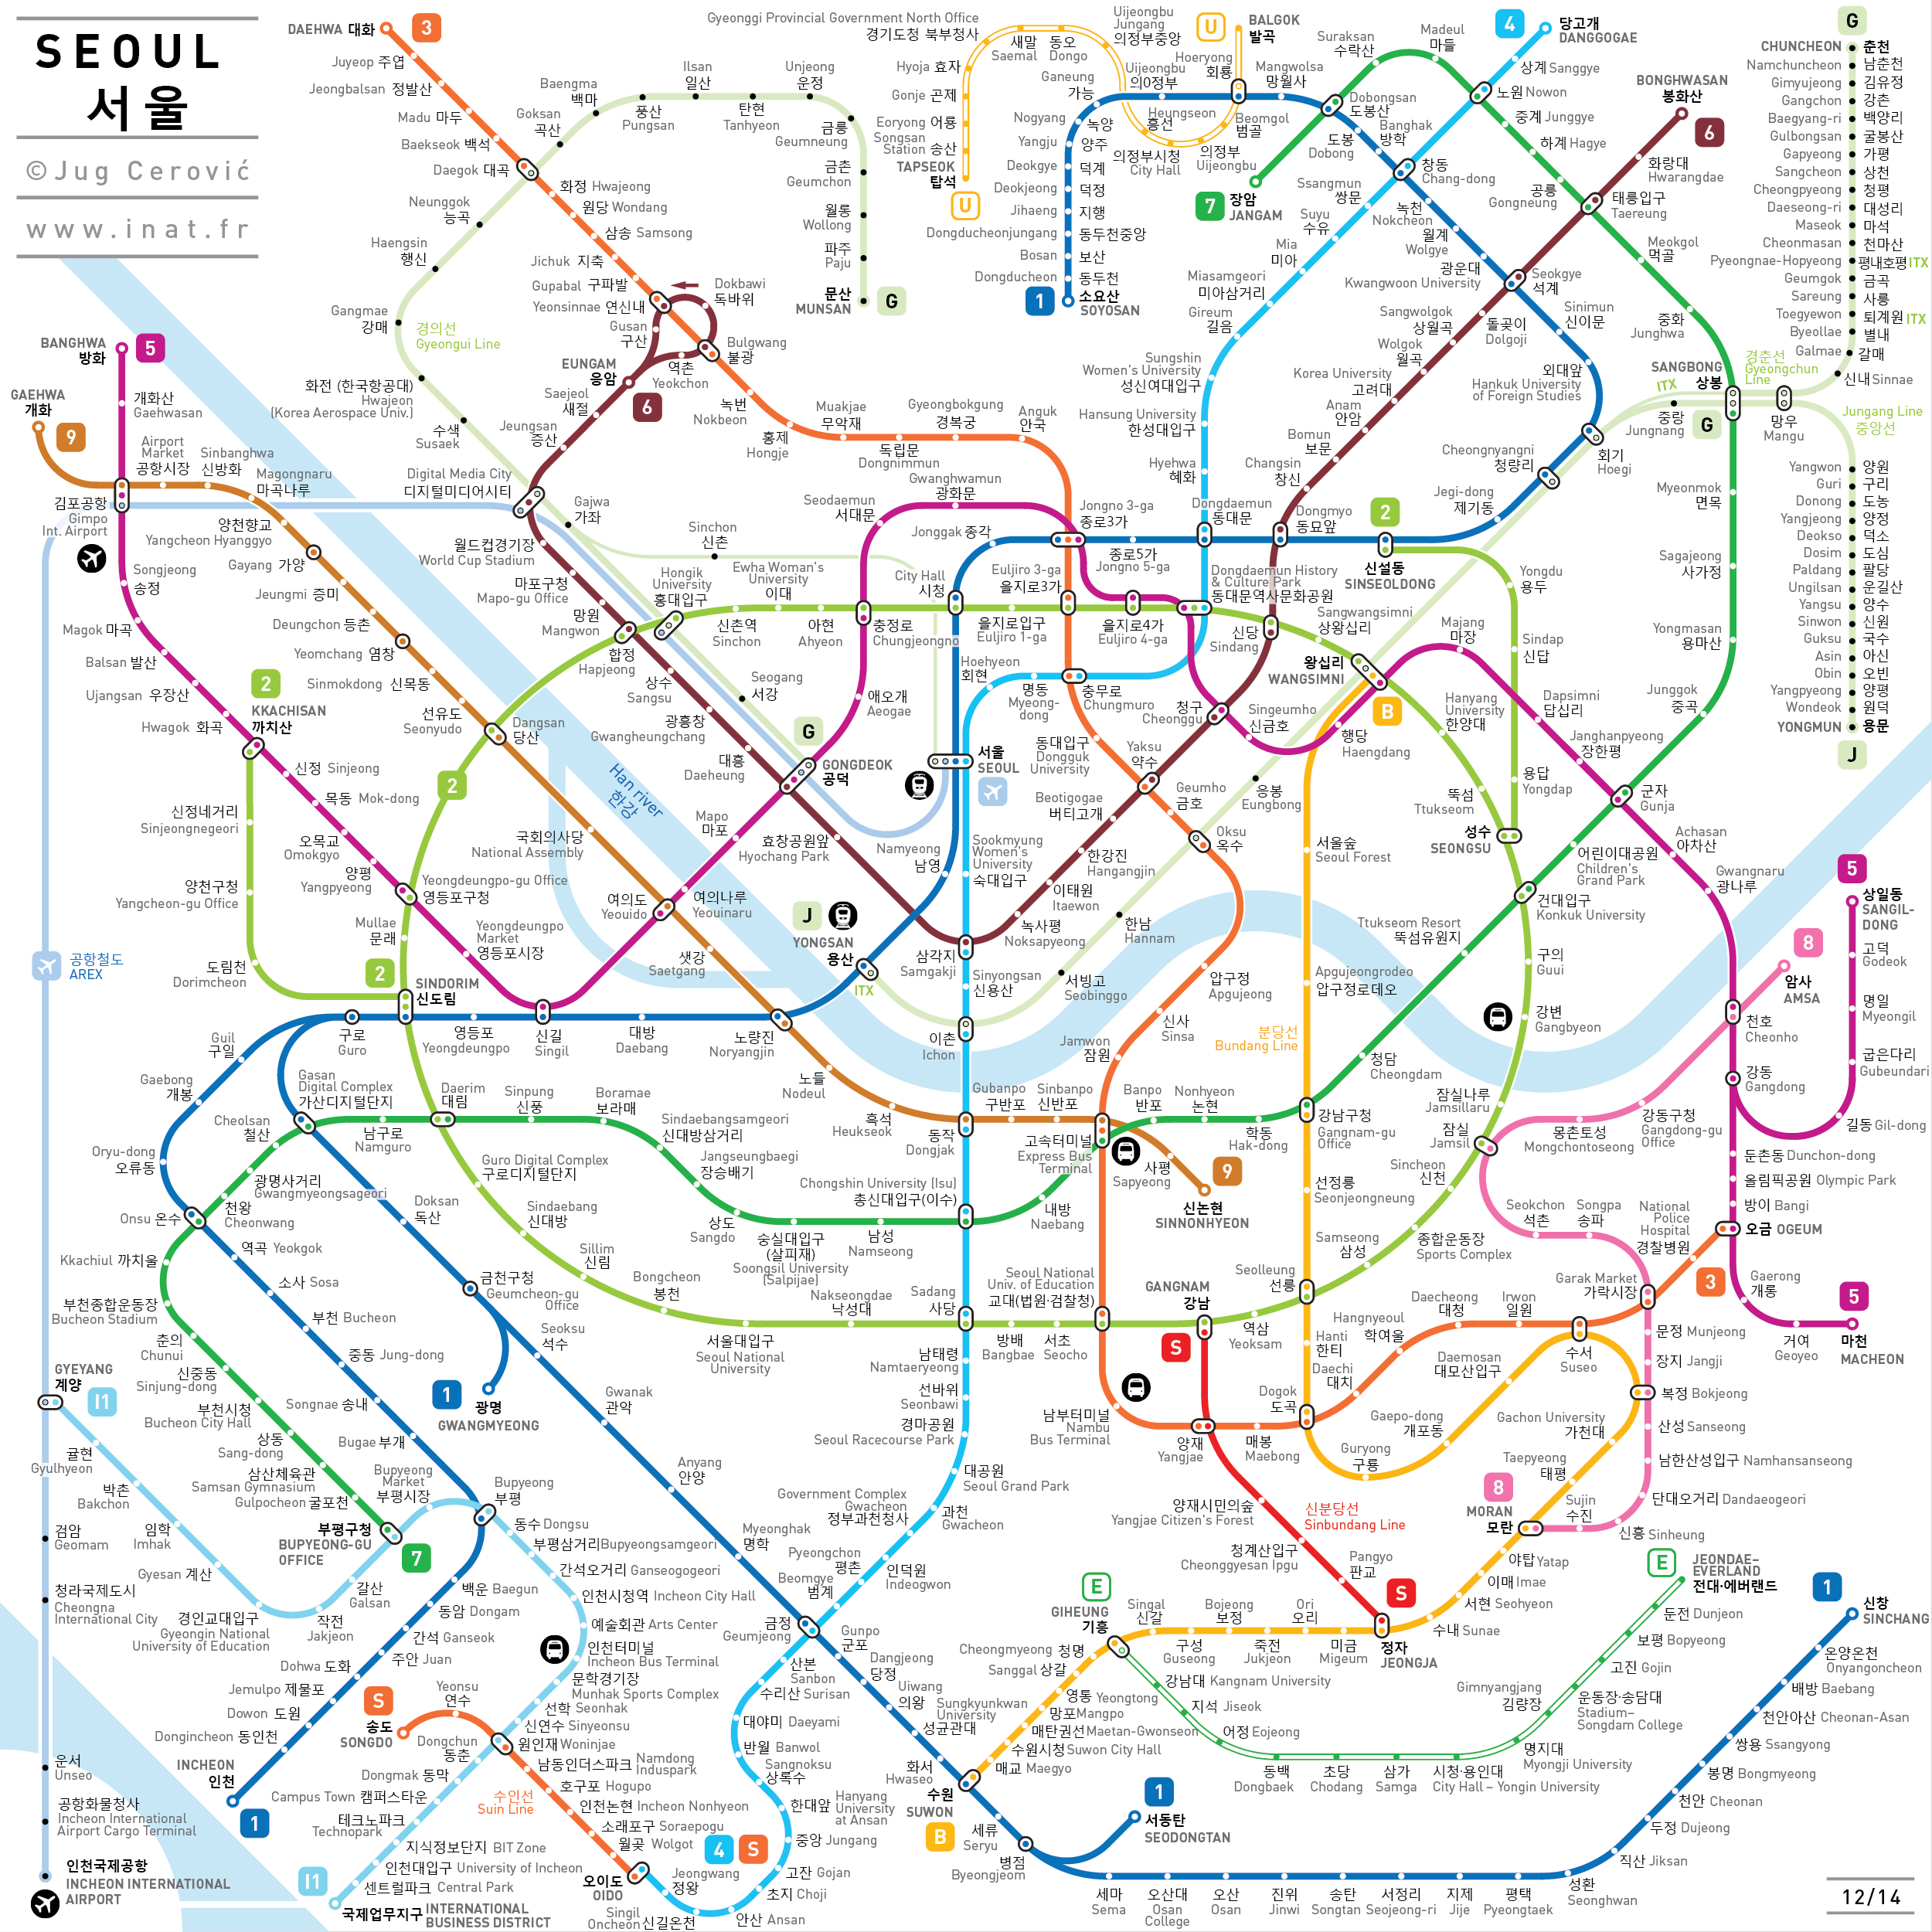 seoul-metro-subway-map_by_Juc_Cerovic